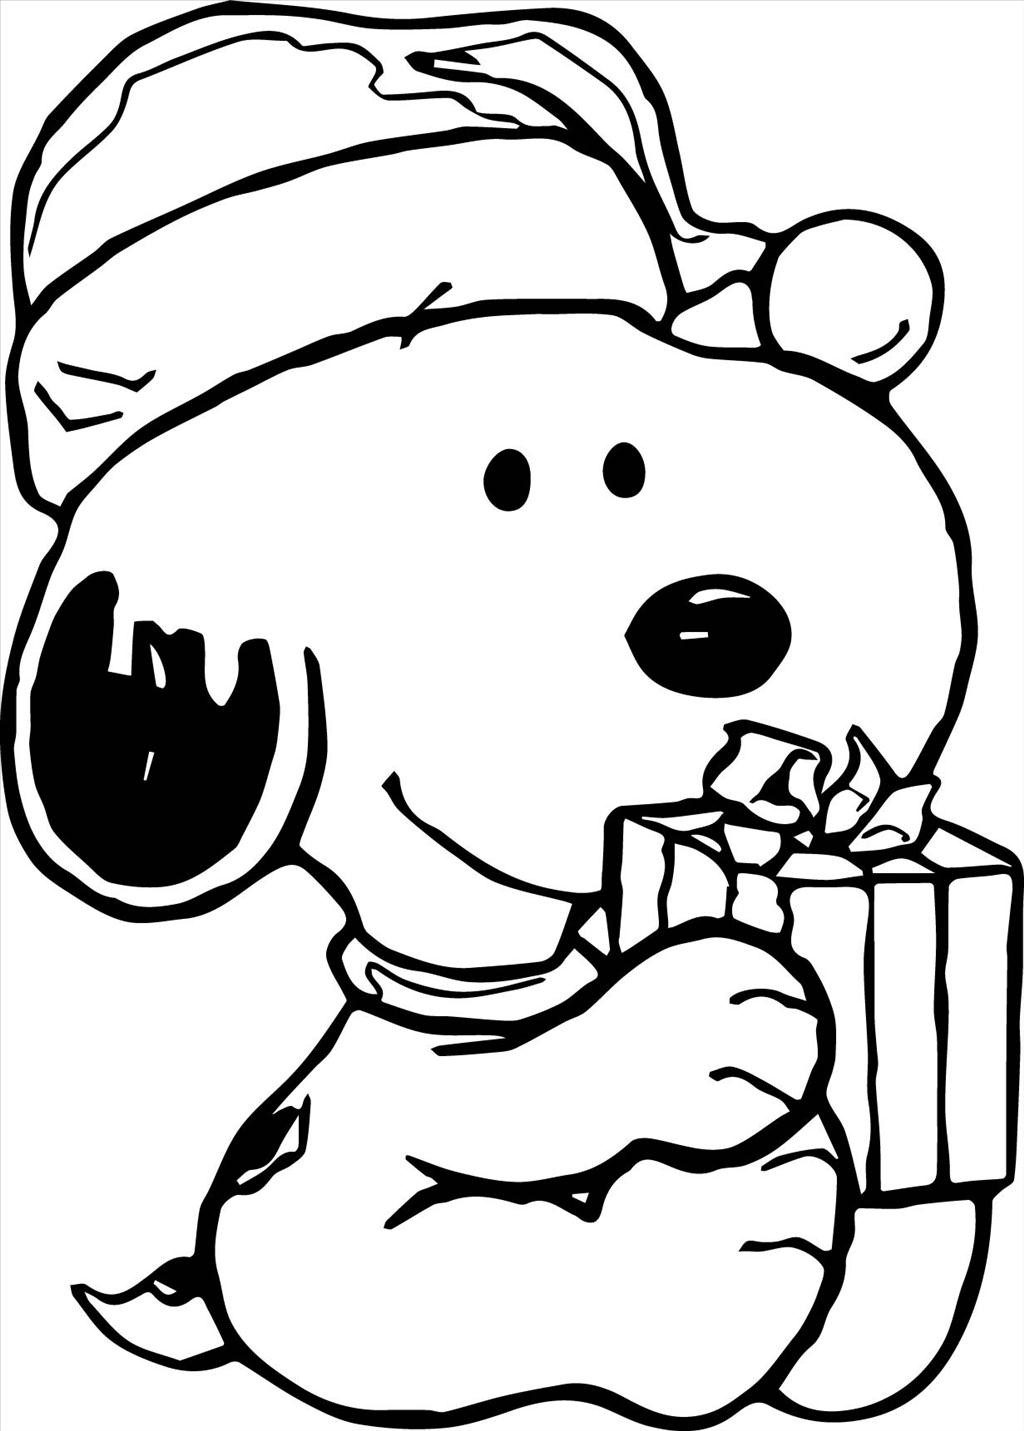 Peauts coloring pages ~ Snoopy Drawing Pictures at GetDrawings.com | Free for ...